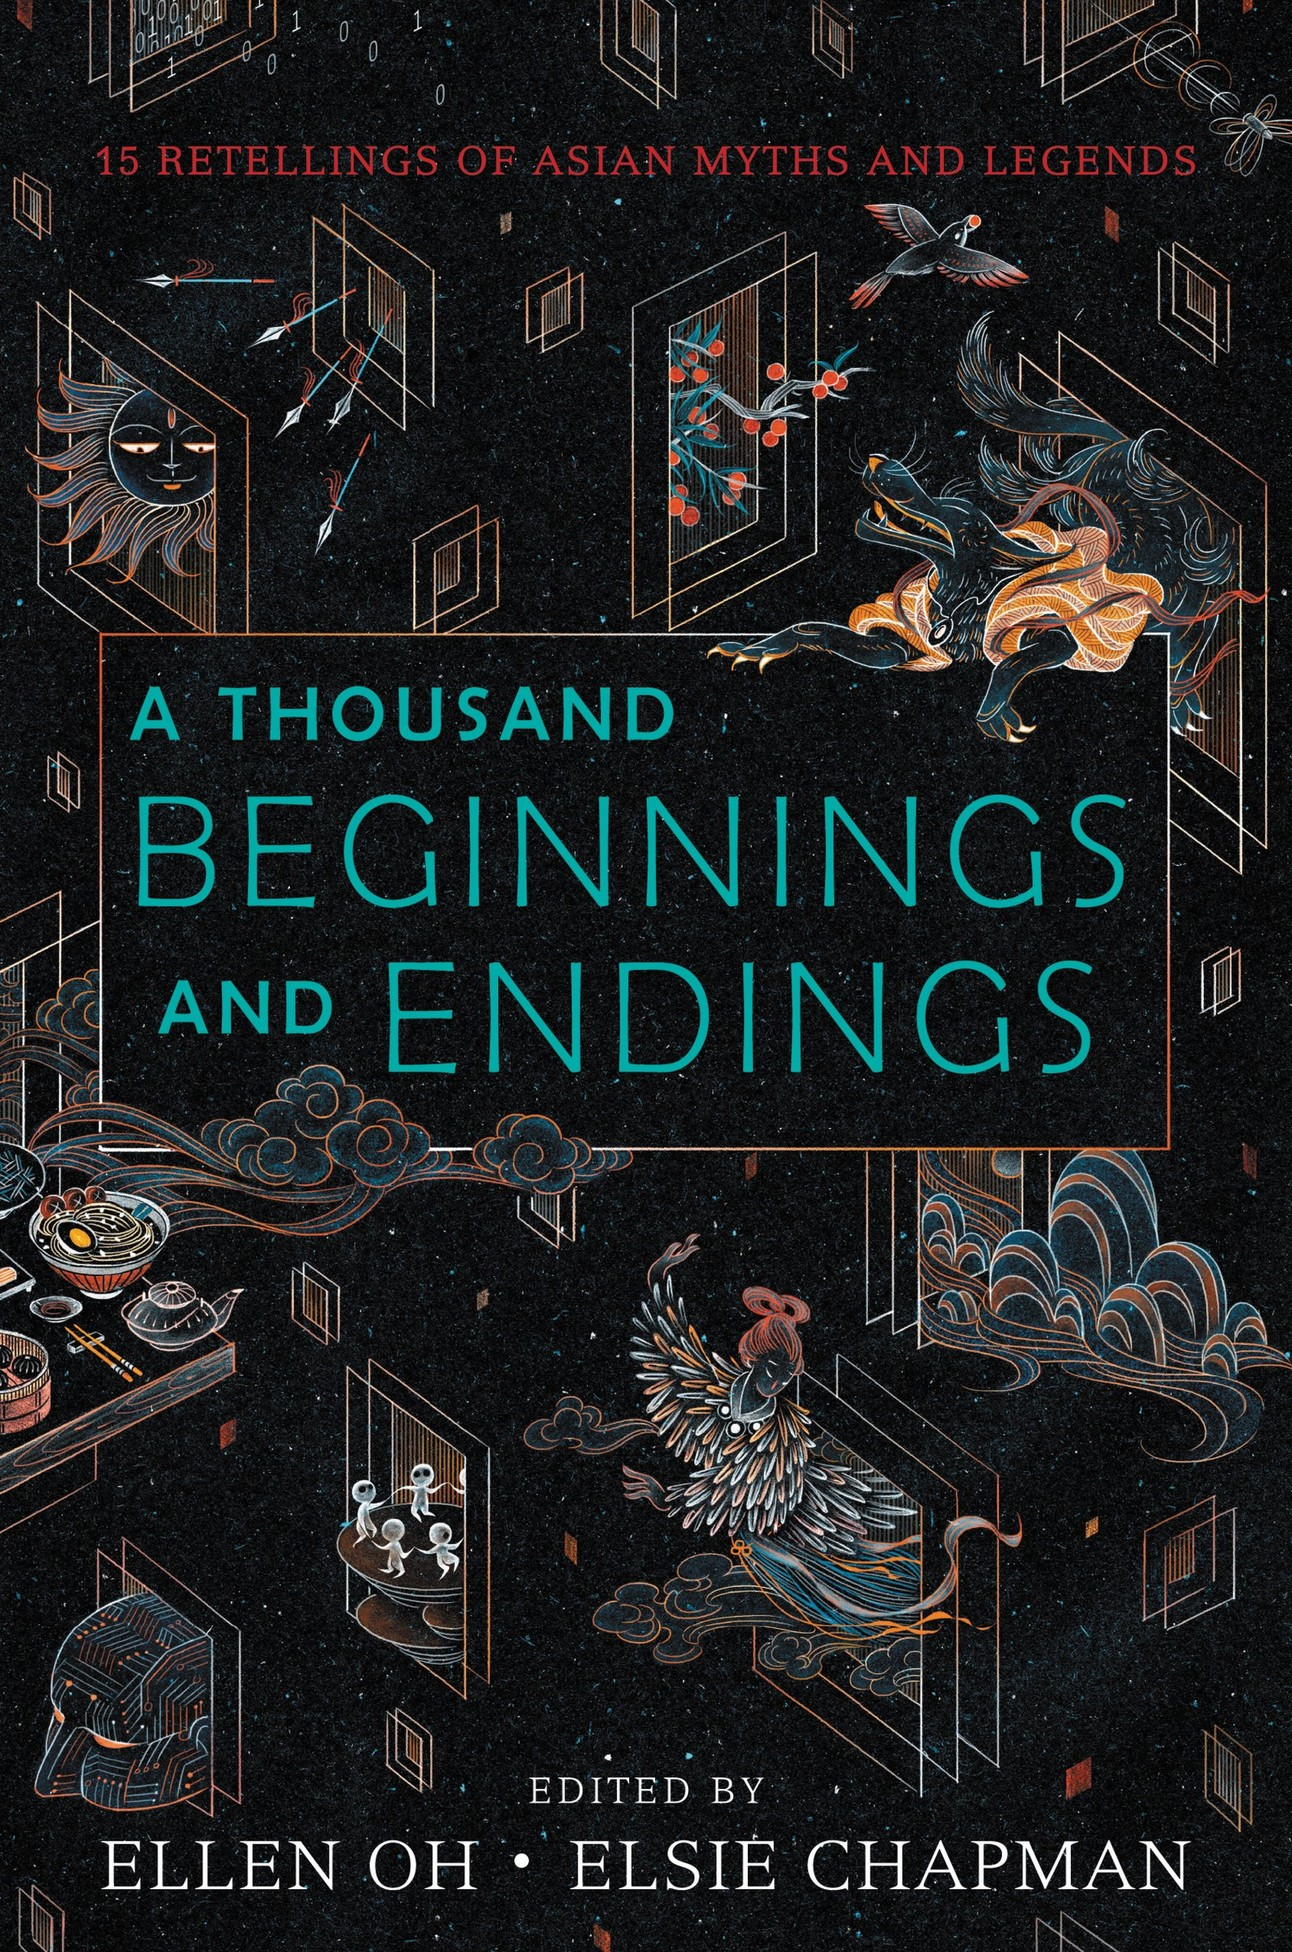 a thousand beginnings and endings book cover